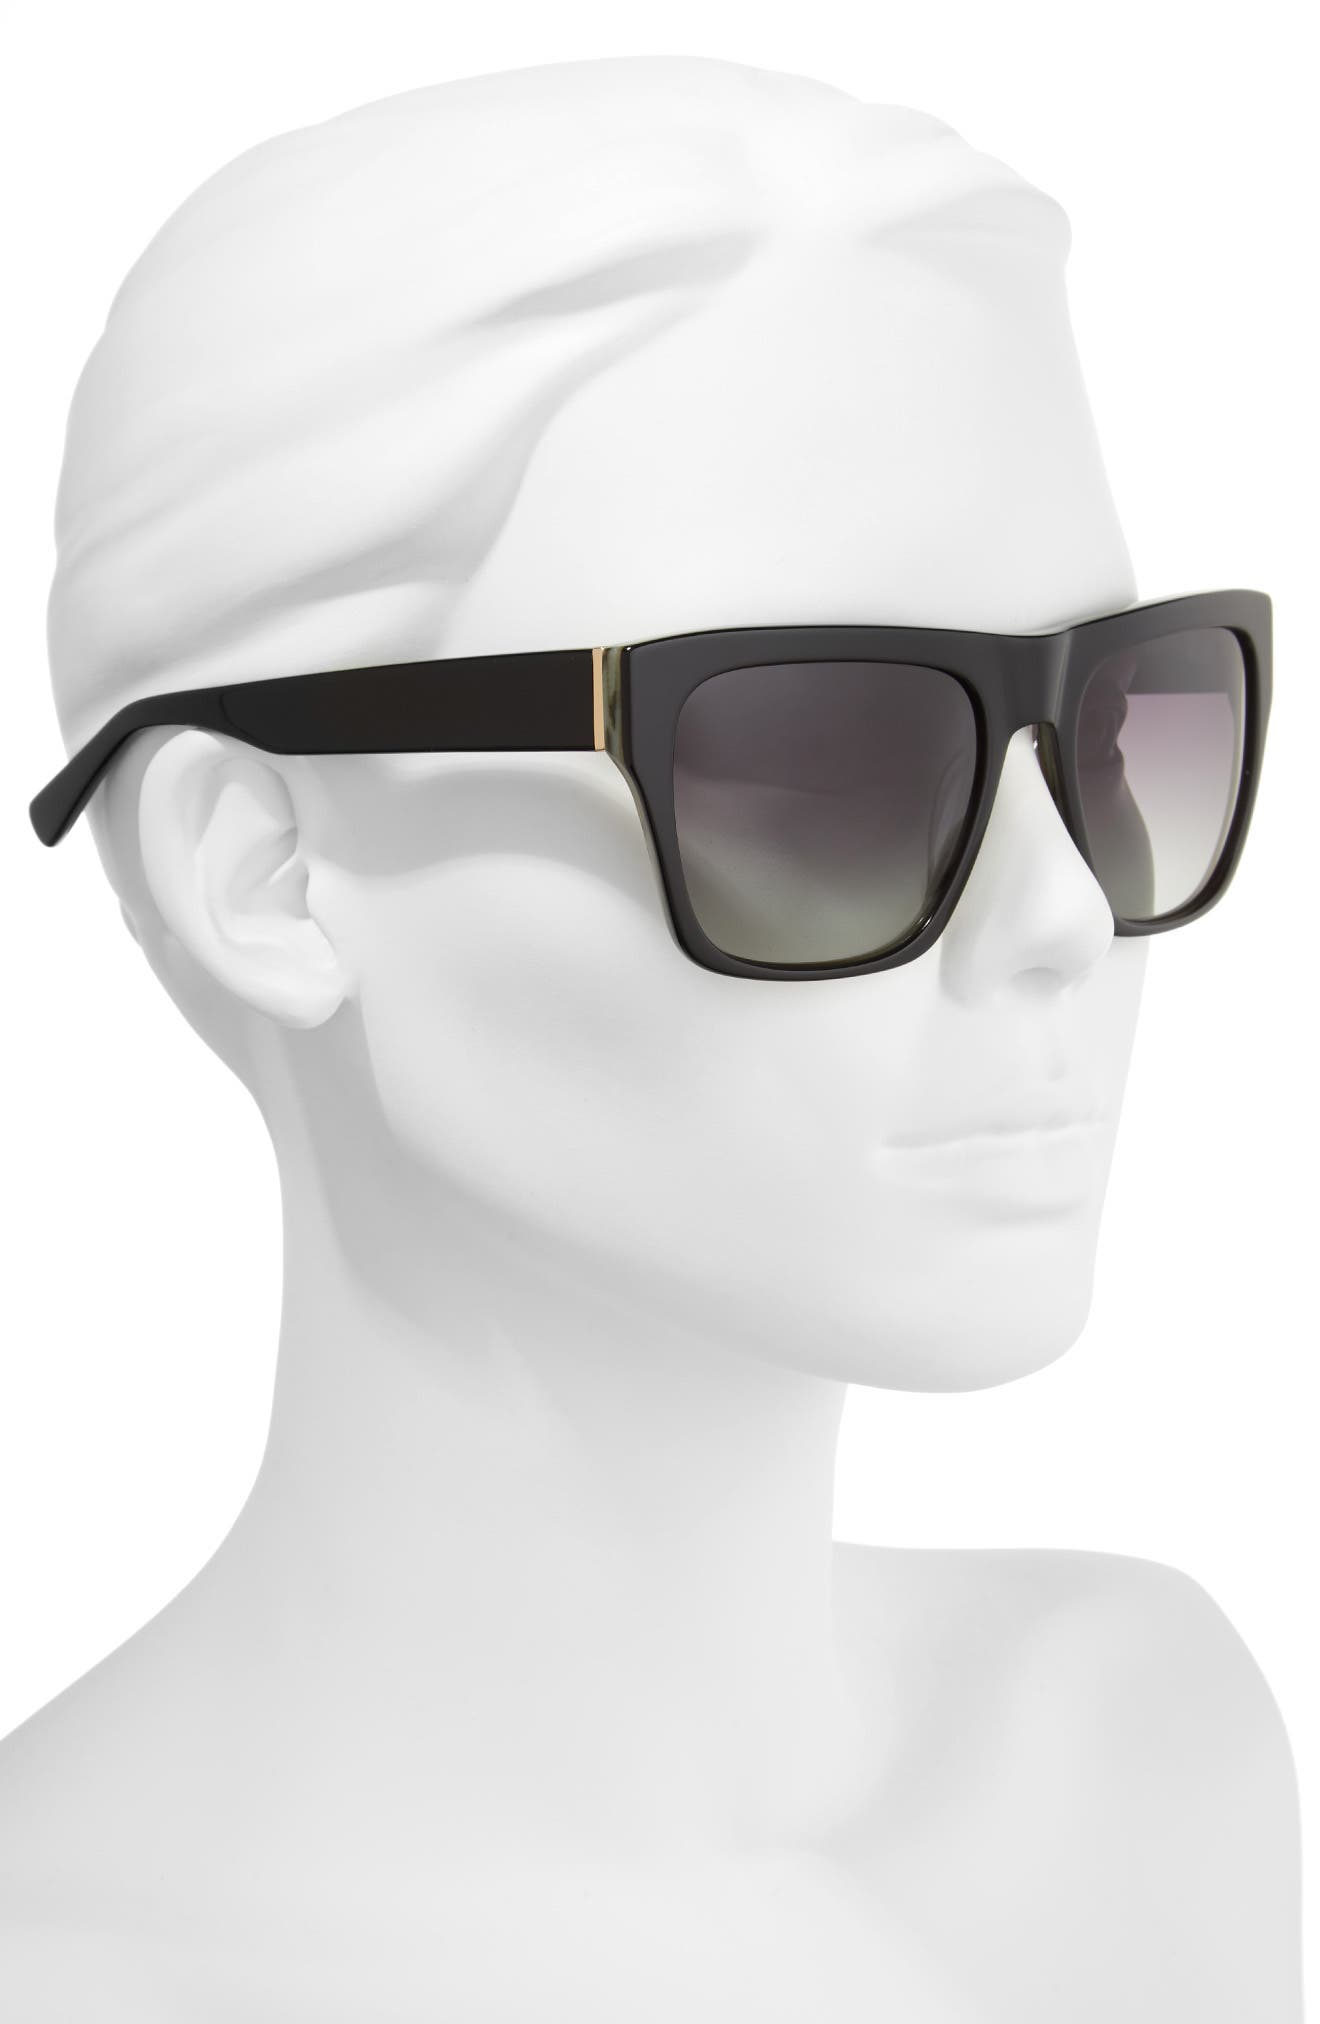 57mm Gradient Square Sunglasses,                             Alternate thumbnail 2, color,                             Black